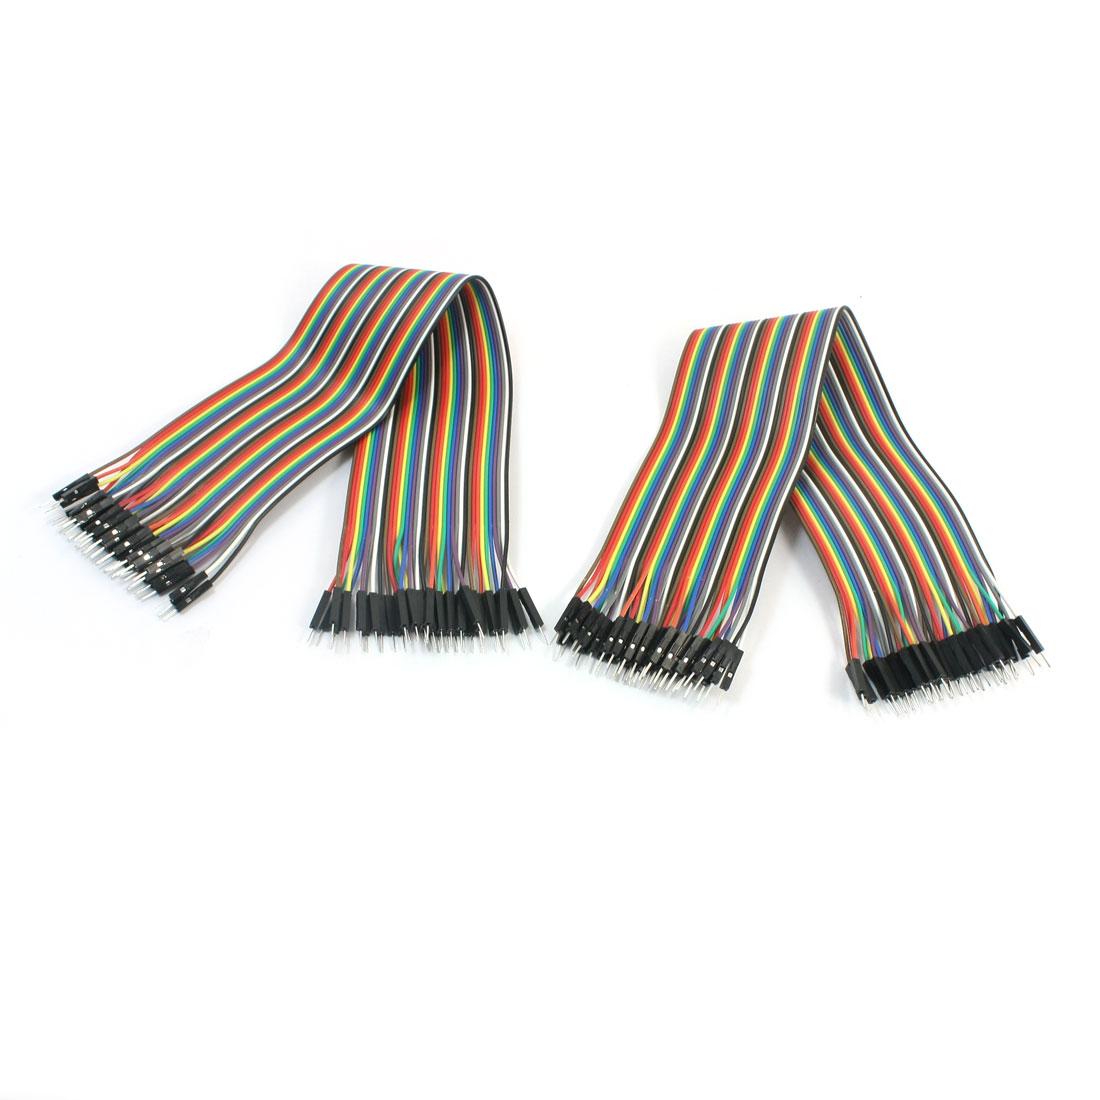 80pcs 30cm 2.54mm 1P-1P Male to Male Flexible Jumper Wire Cable Line Ribbon